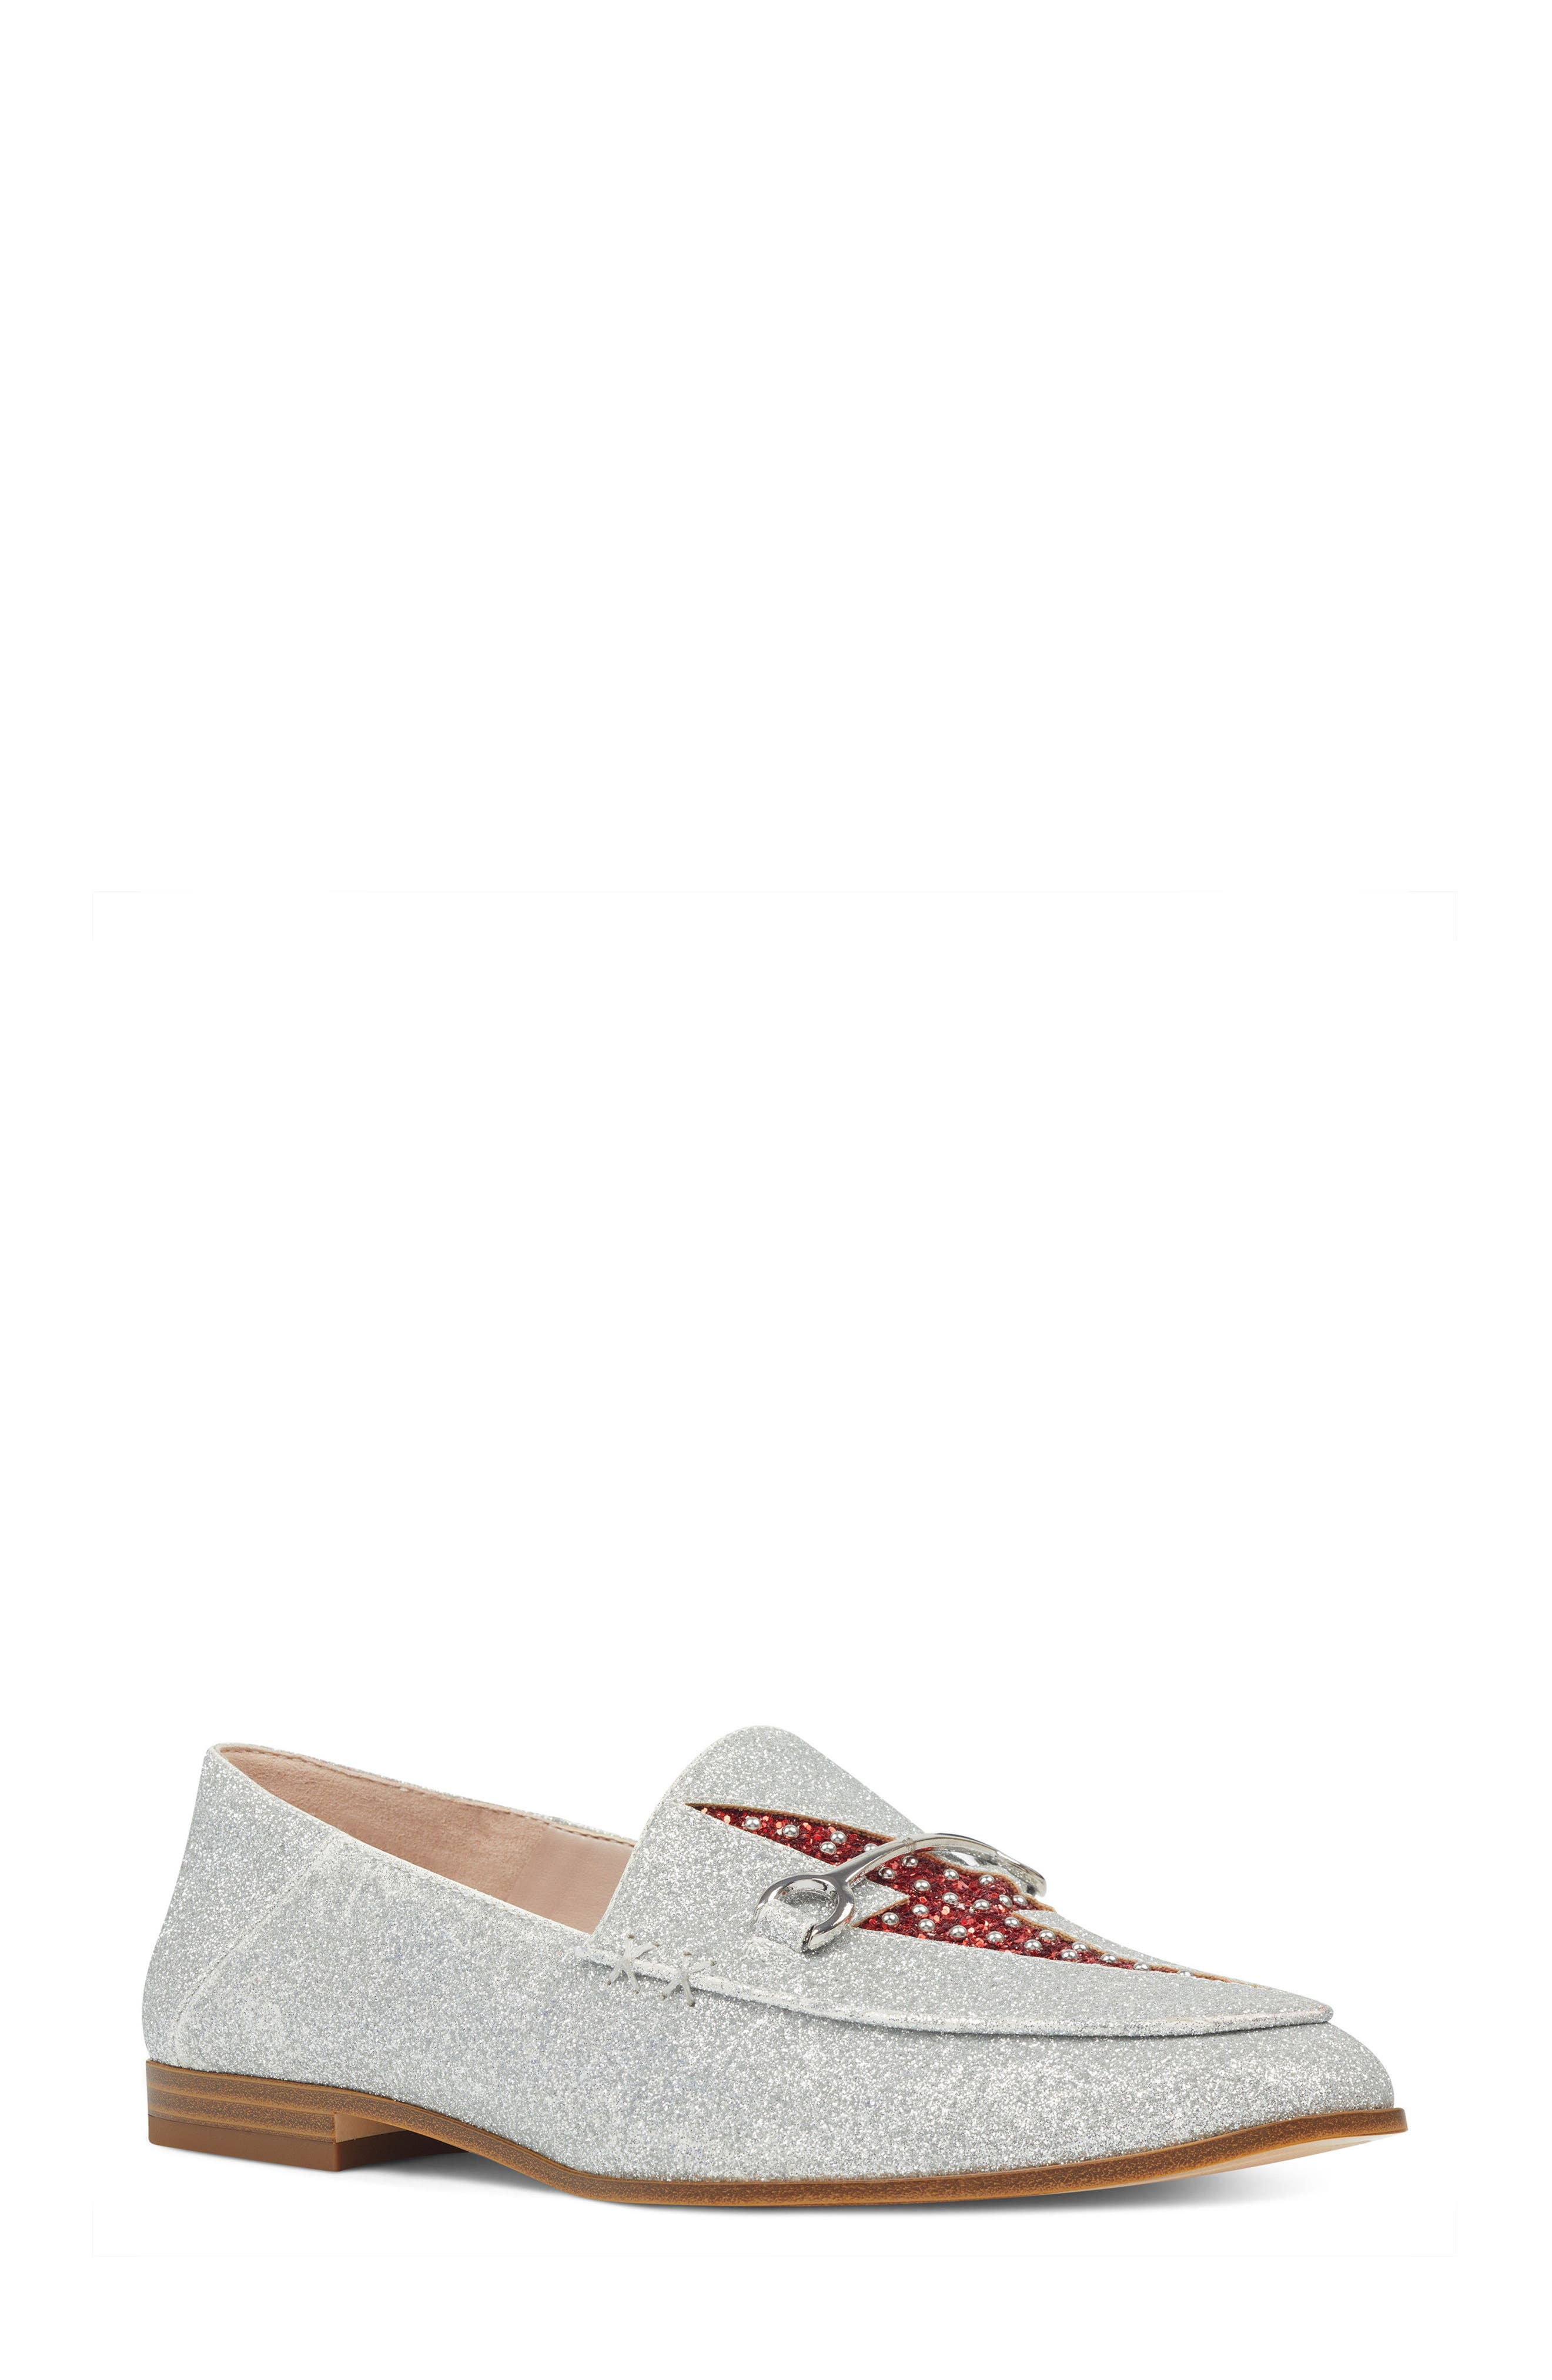 Wildgirls Embellished Loafer,                             Main thumbnail 1, color,                             SILVER/ RED FABRIC